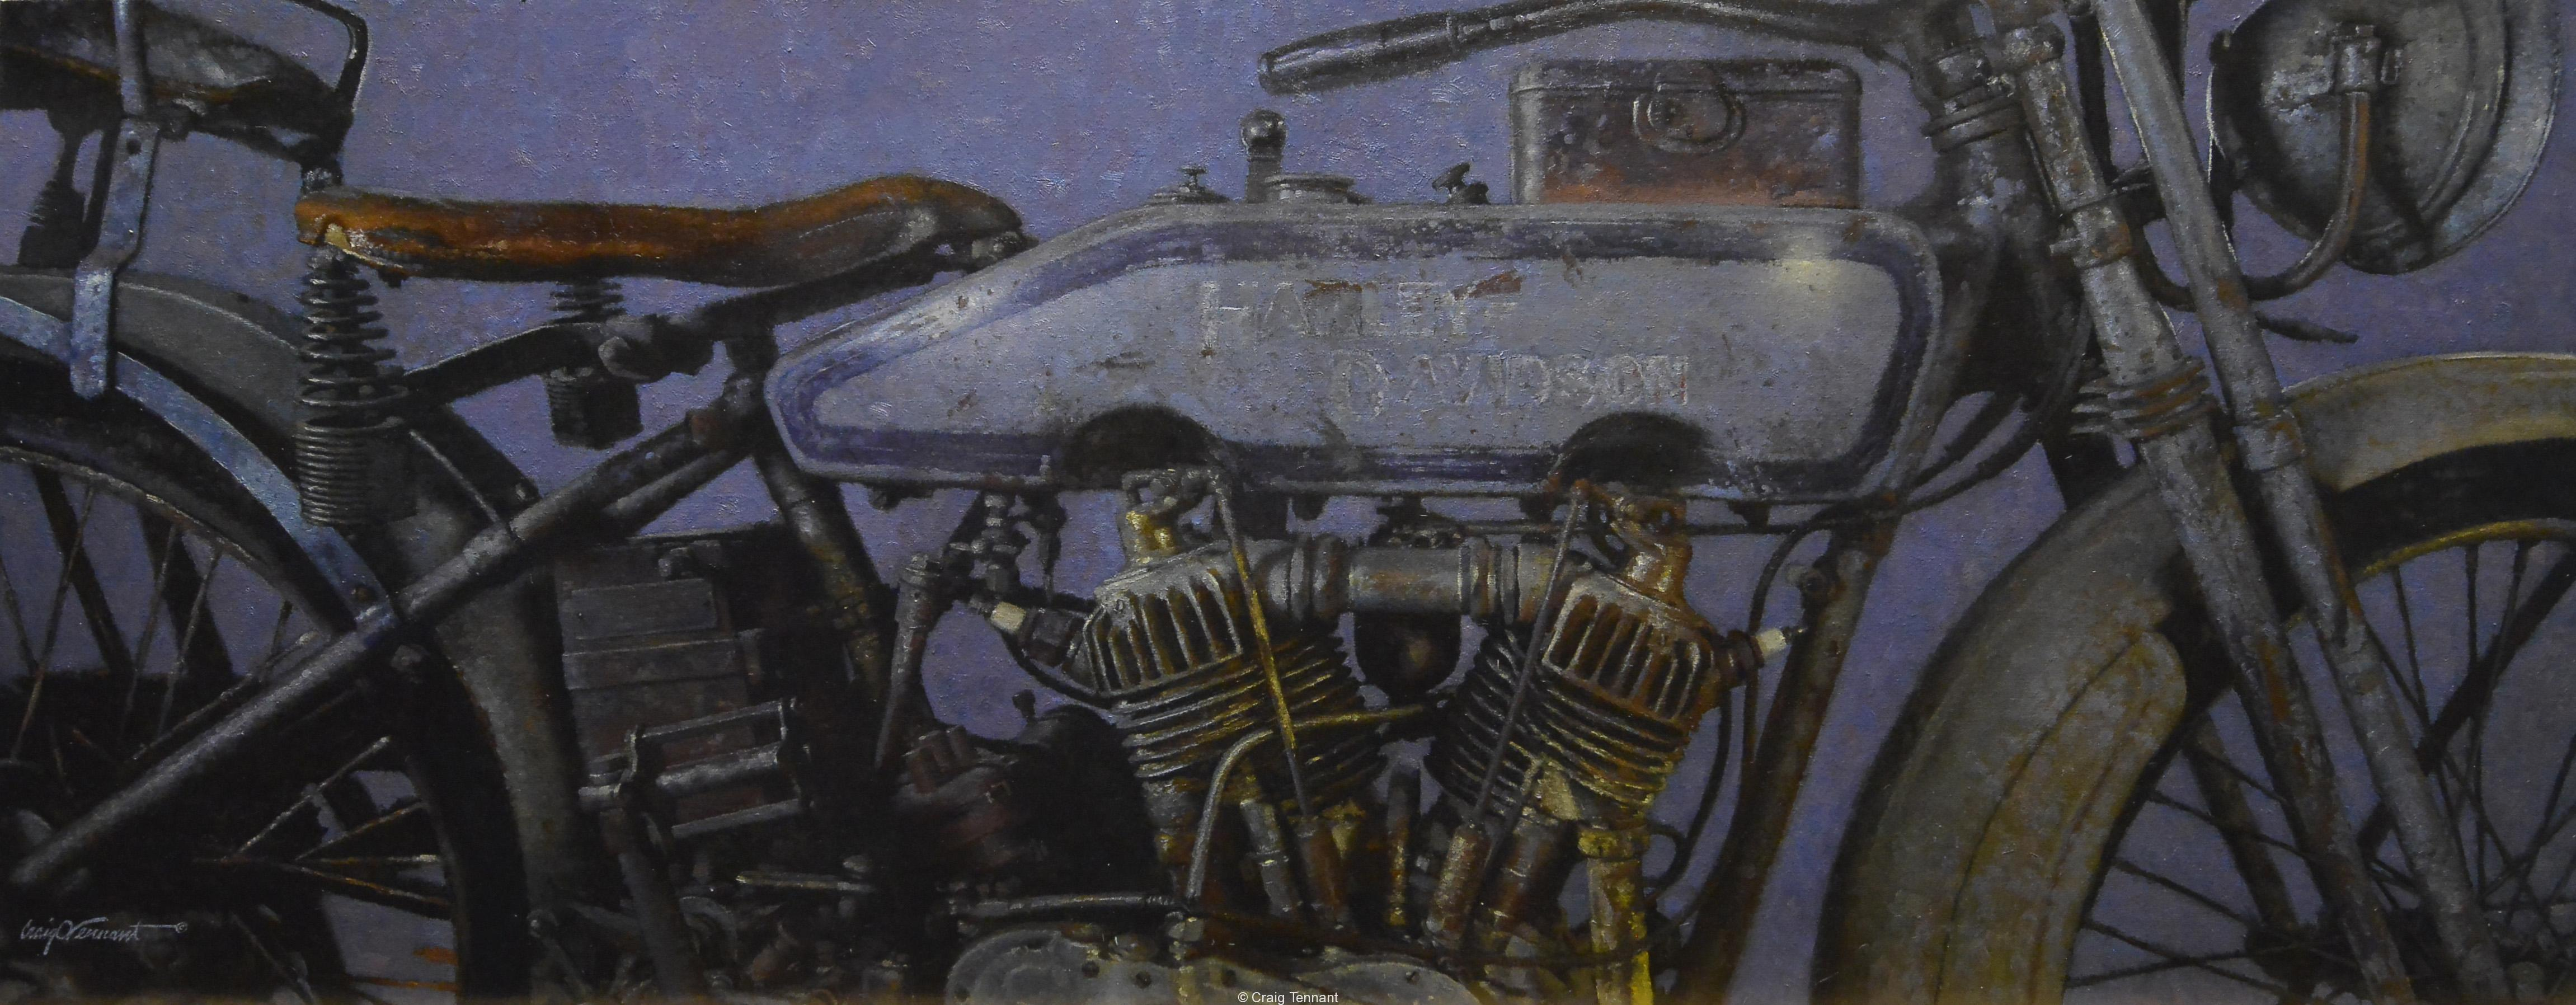 """Fading Memories"" 20"" x 50"" Original Oil Painting on Linen by Craig Tennant Harley Davidson Motorcycle Vintage"